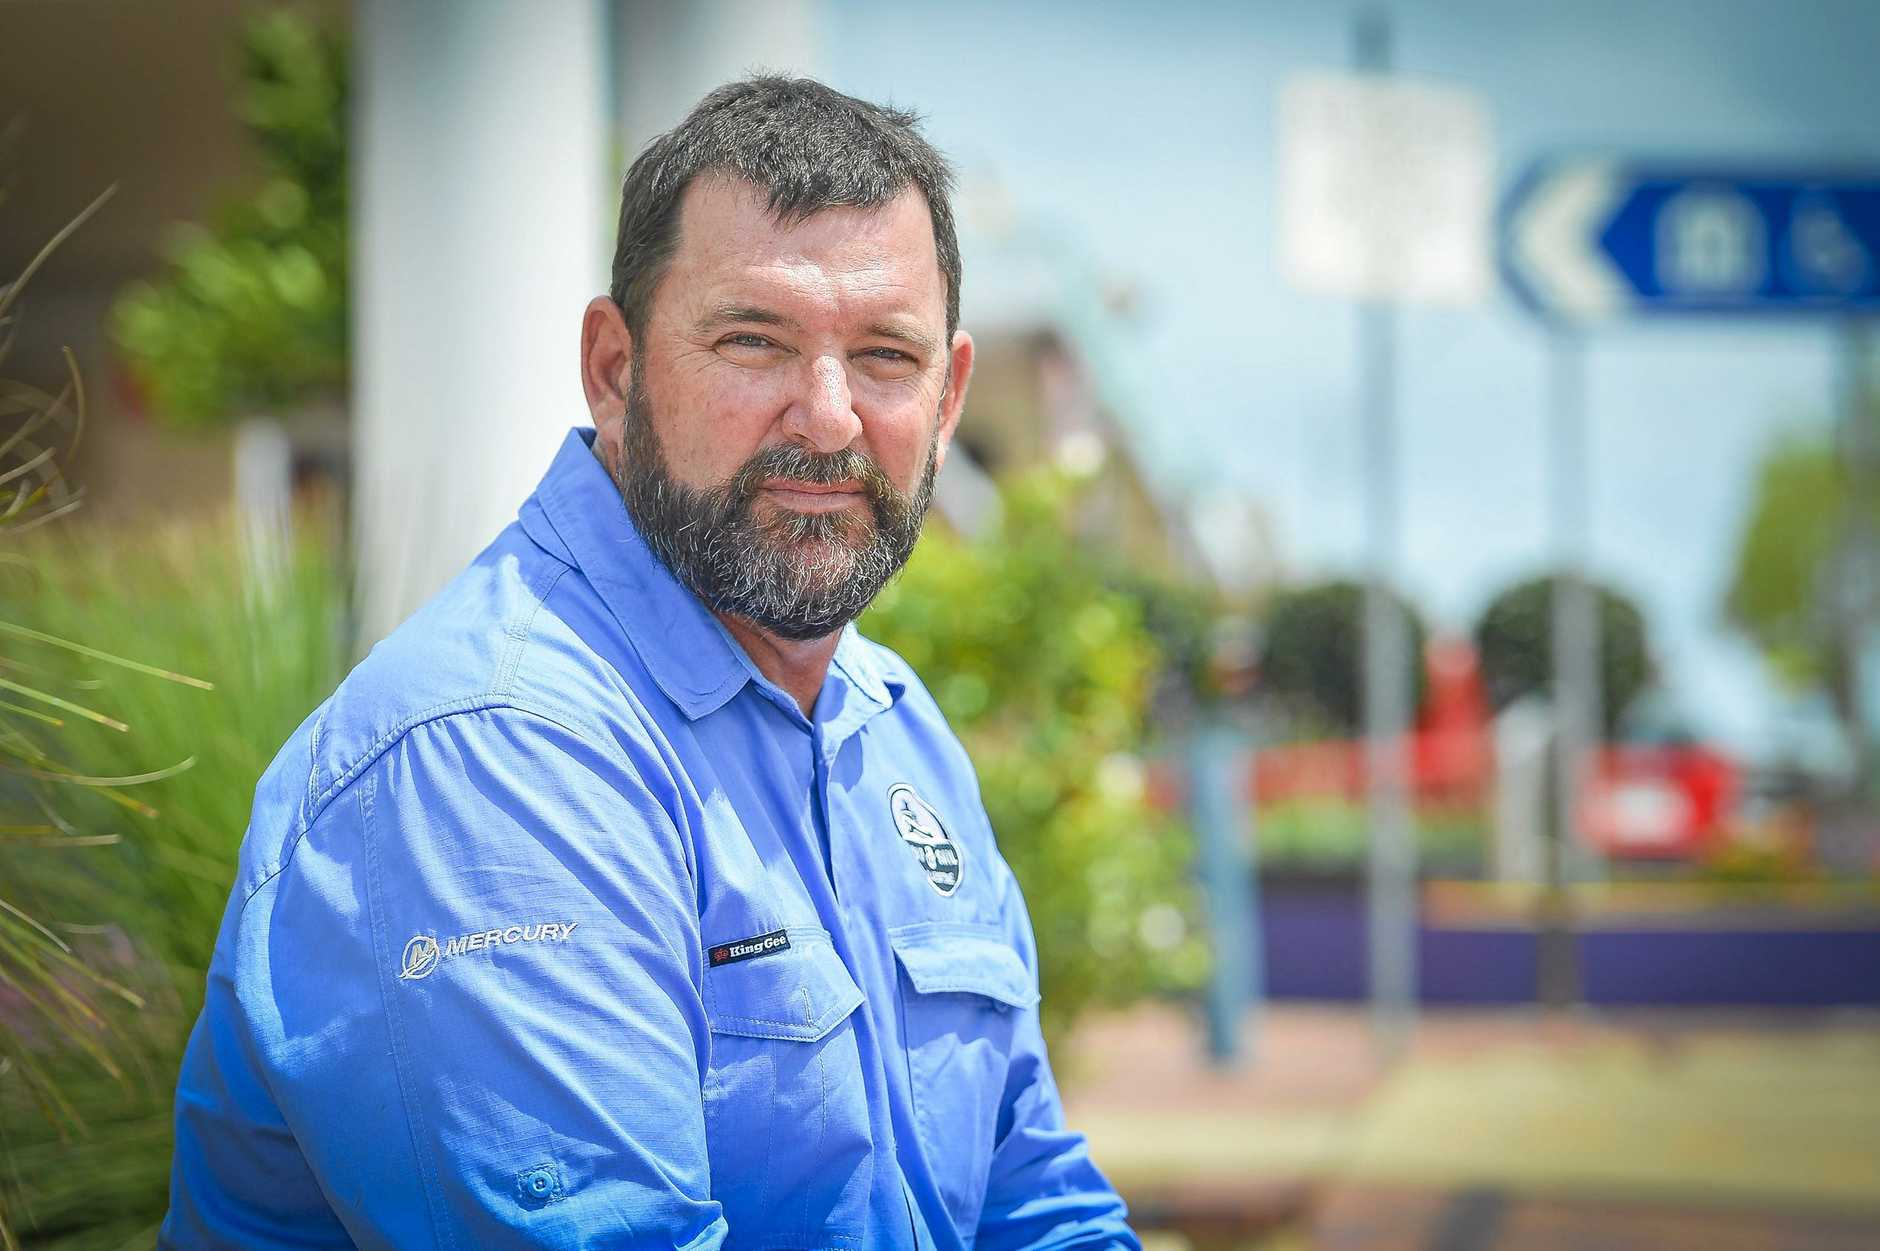 Patrick Laws will be contesting the 2018 Gladstone Regional Council by-election.